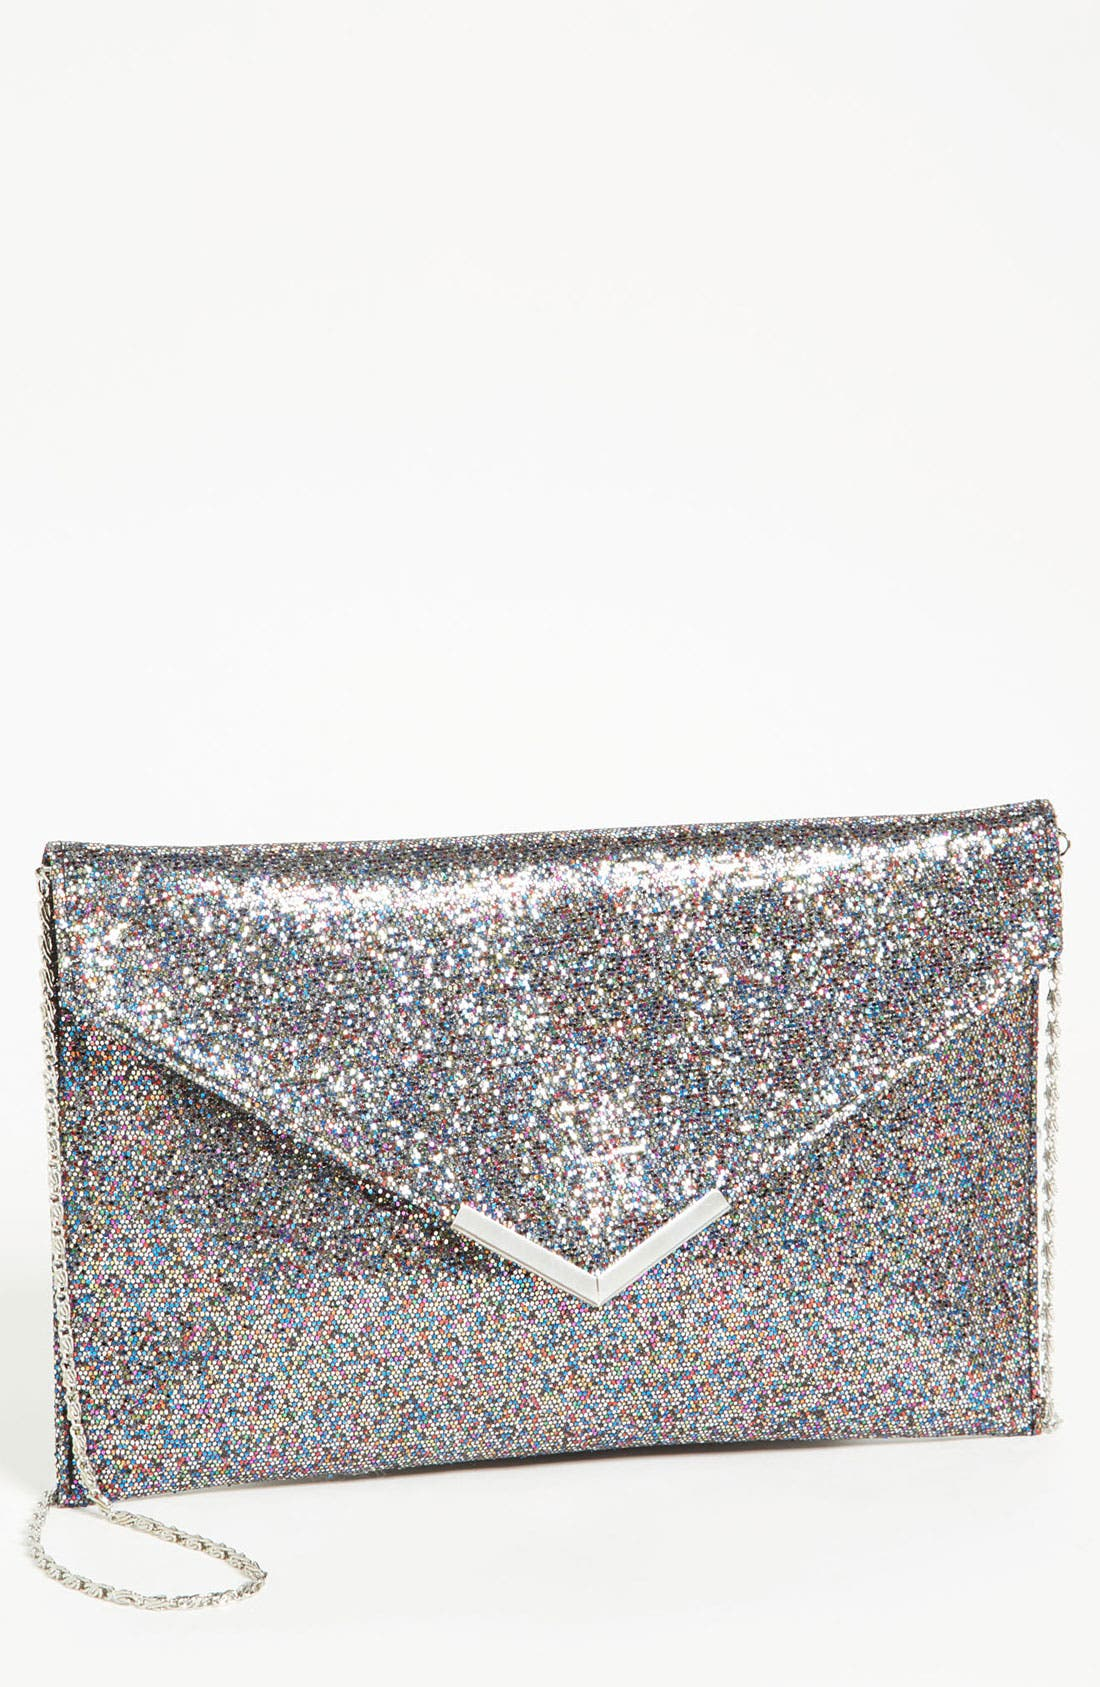 Alternate Image 1 Selected - Tarnish Glitter Envelope Clutch